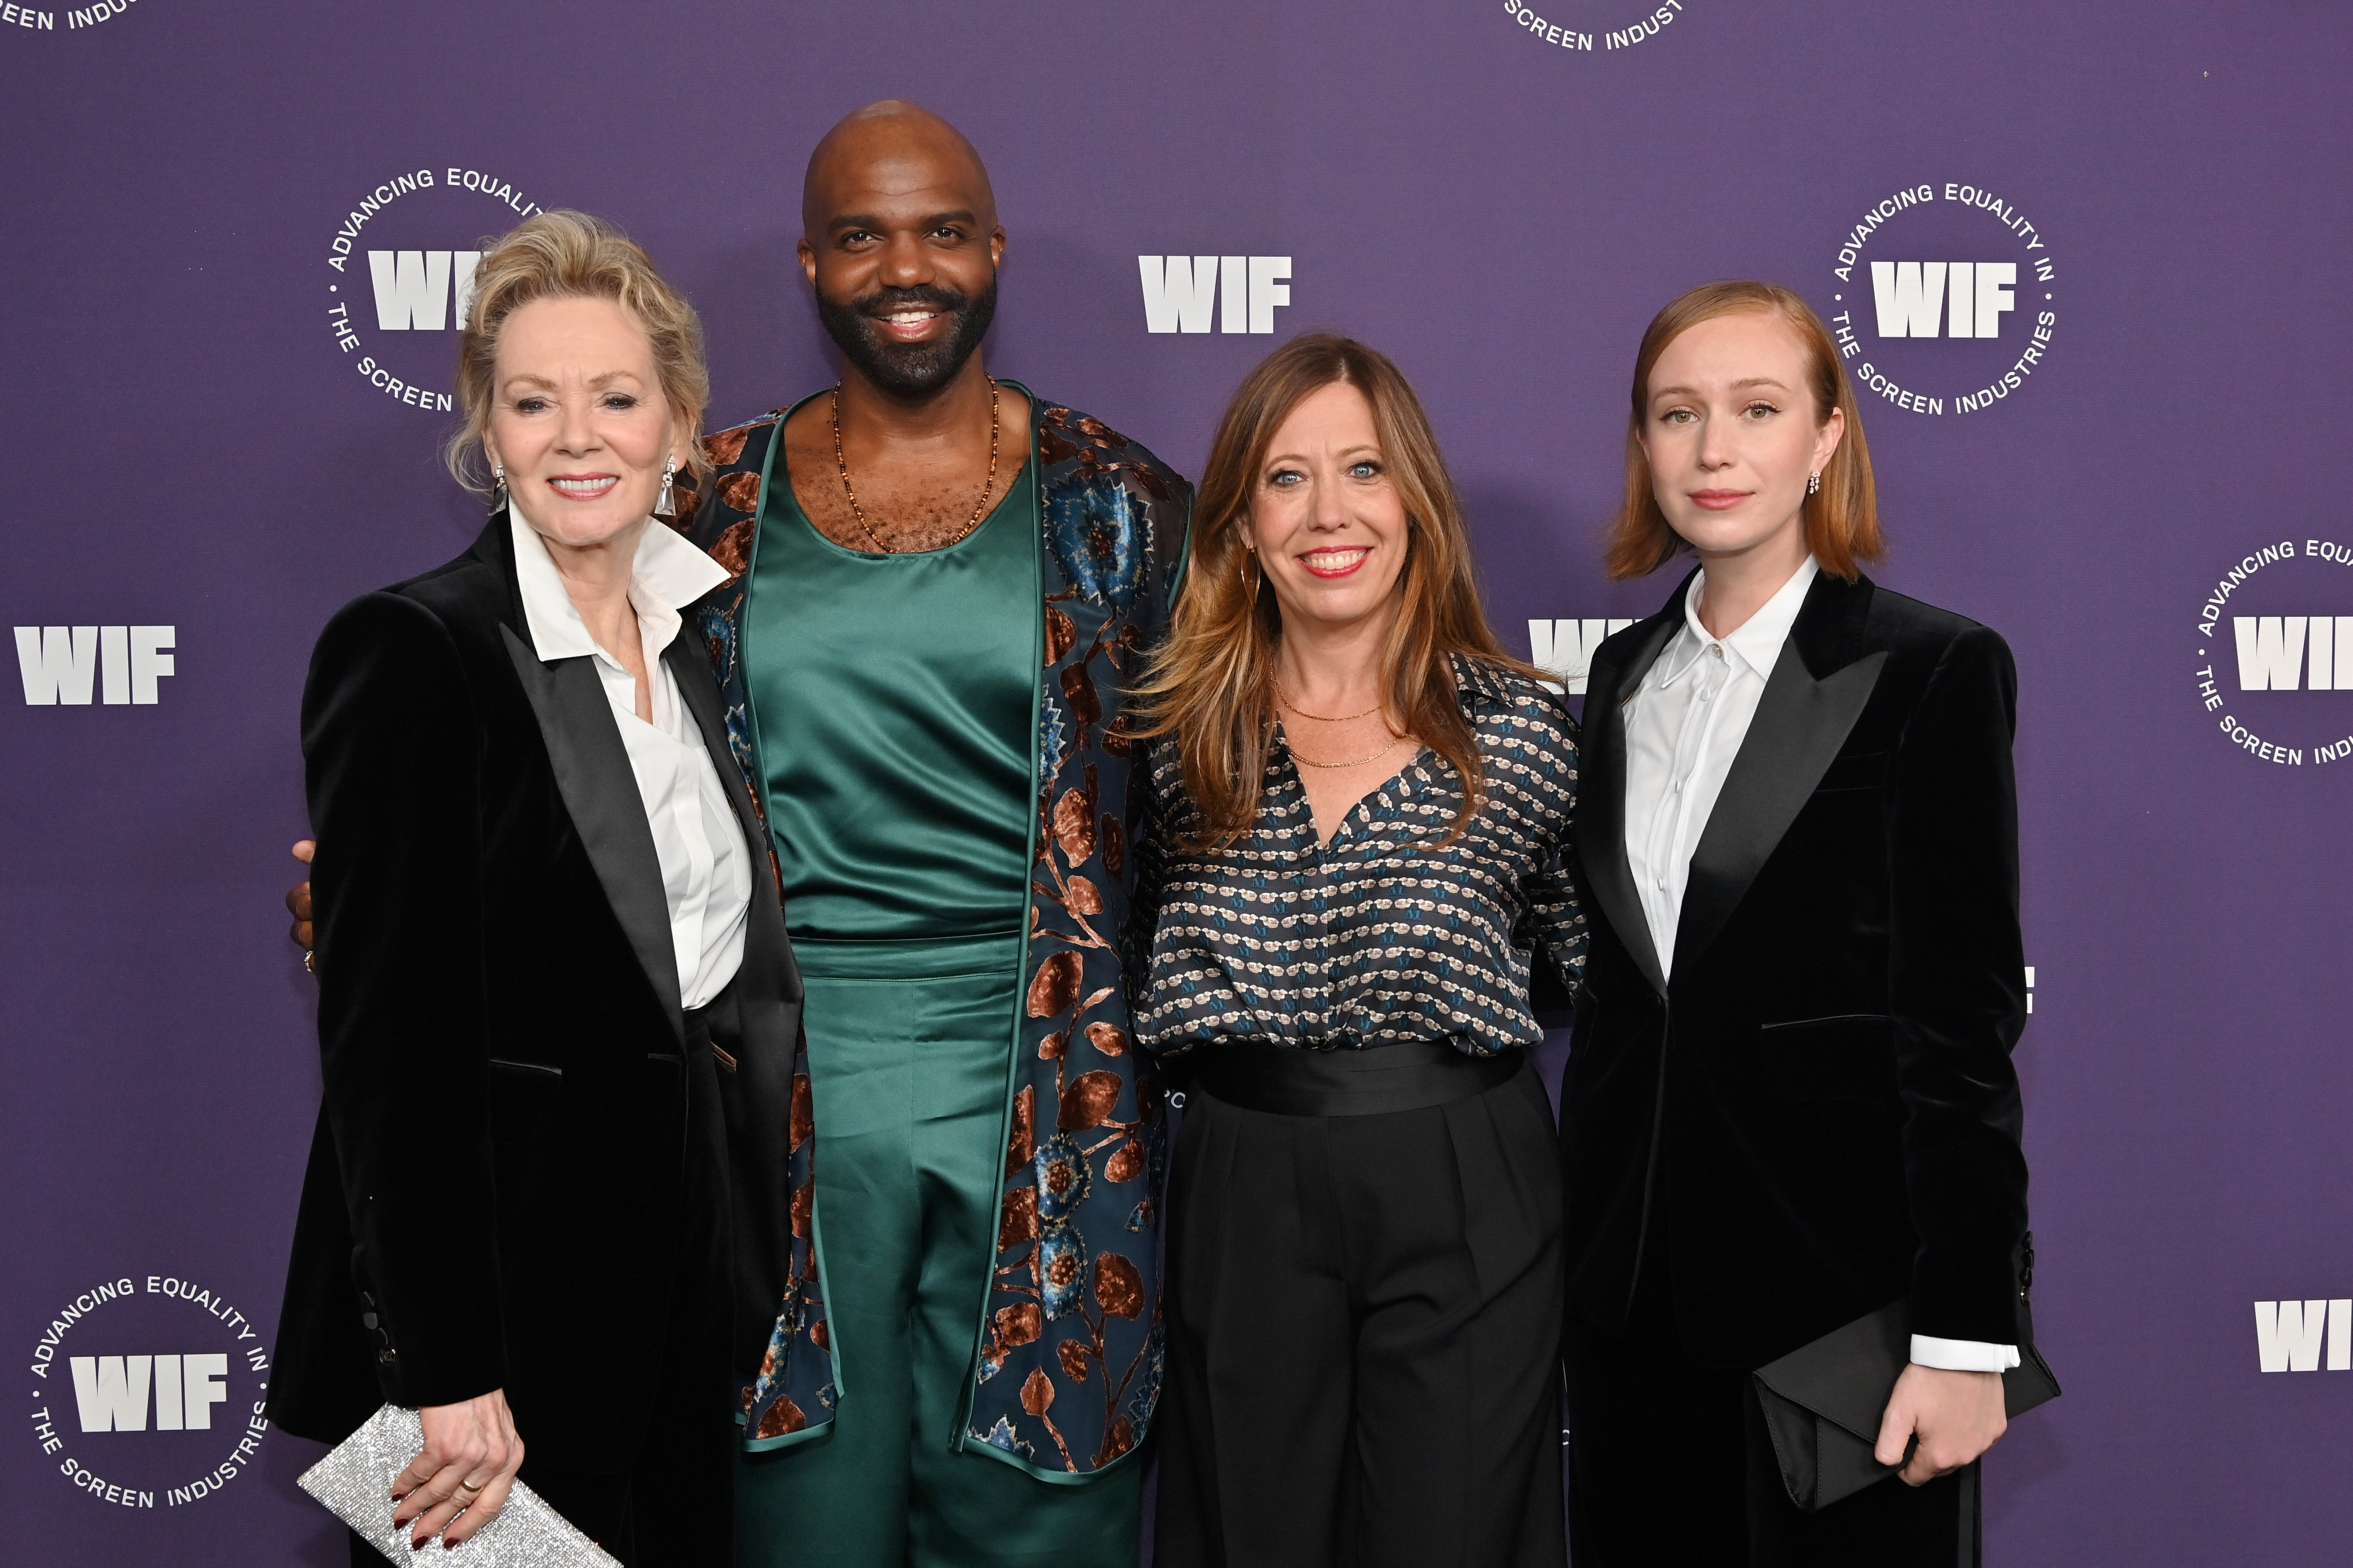 LOS ANGELES, CALIFORNIA - OCTOBER 06: (L-R) Crystal Award Honoree Jean Smart, wearing Max Mara, Carl Clemons-Hopkins, WIF Executive Director Kirsten Schaffer and Crystal Award Honoree Hannah Einbinder, wearing Max Mara, attends the Women in Film Honors: Trailblazers of the New Normal sponsored by Max Mara, ShivHans Pictures, and Lexus at the Academy Museum of Motion Pictures on October 06, 2021 in Los Angeles, California. (Photo by Stefanie Keenan/Getty Images for Women In Film (WIF))